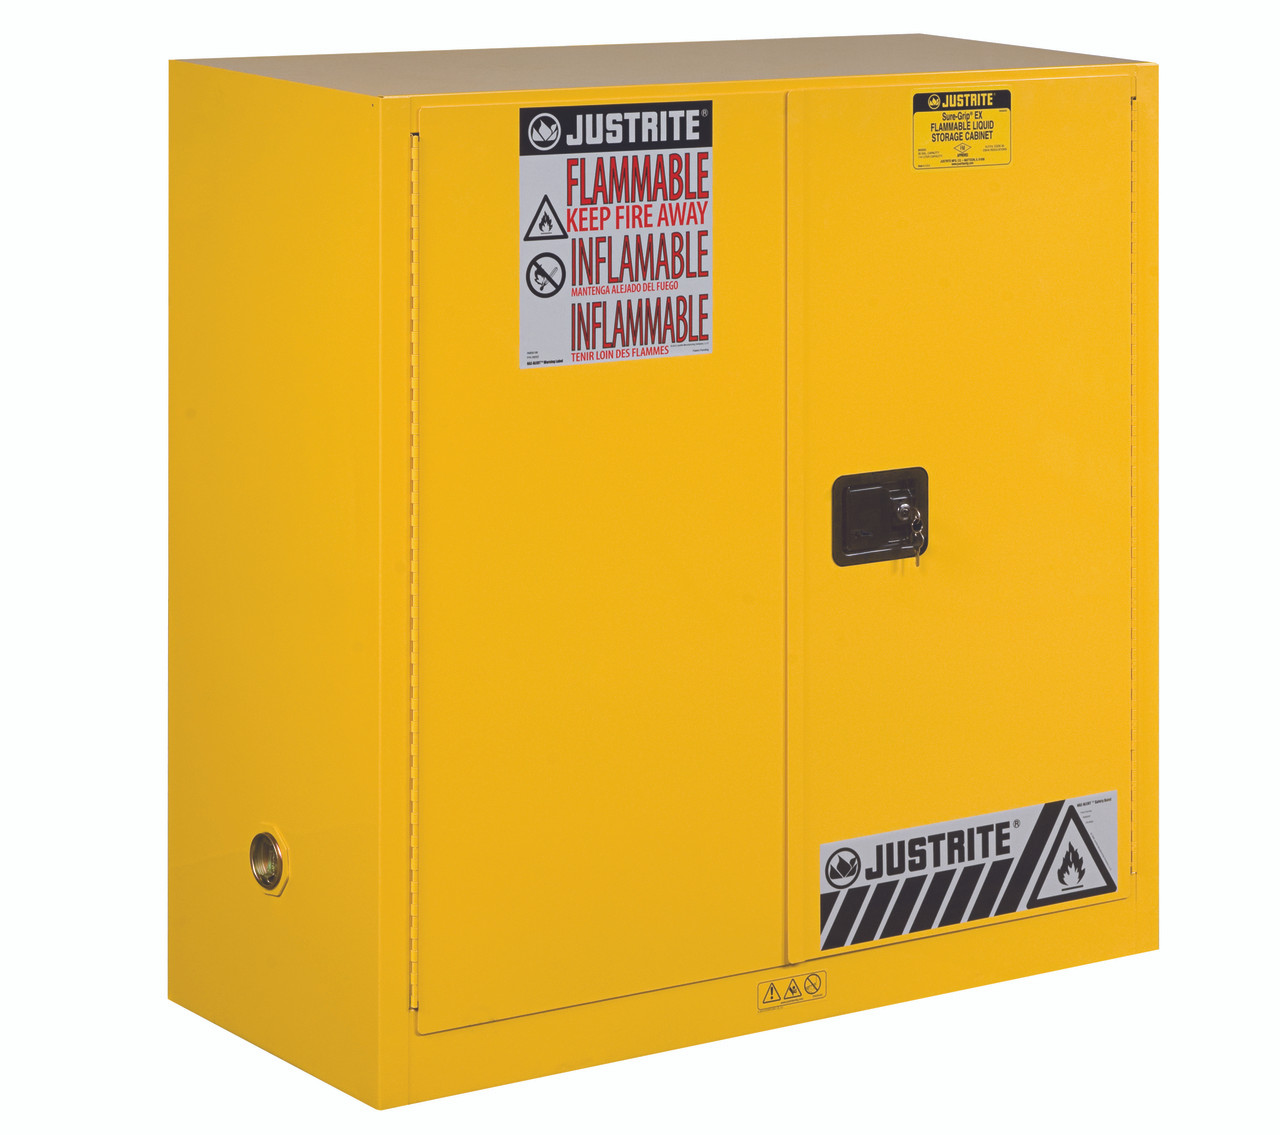 Justrite Flammable Safety Cabinet 893000 30 Gallon Manual